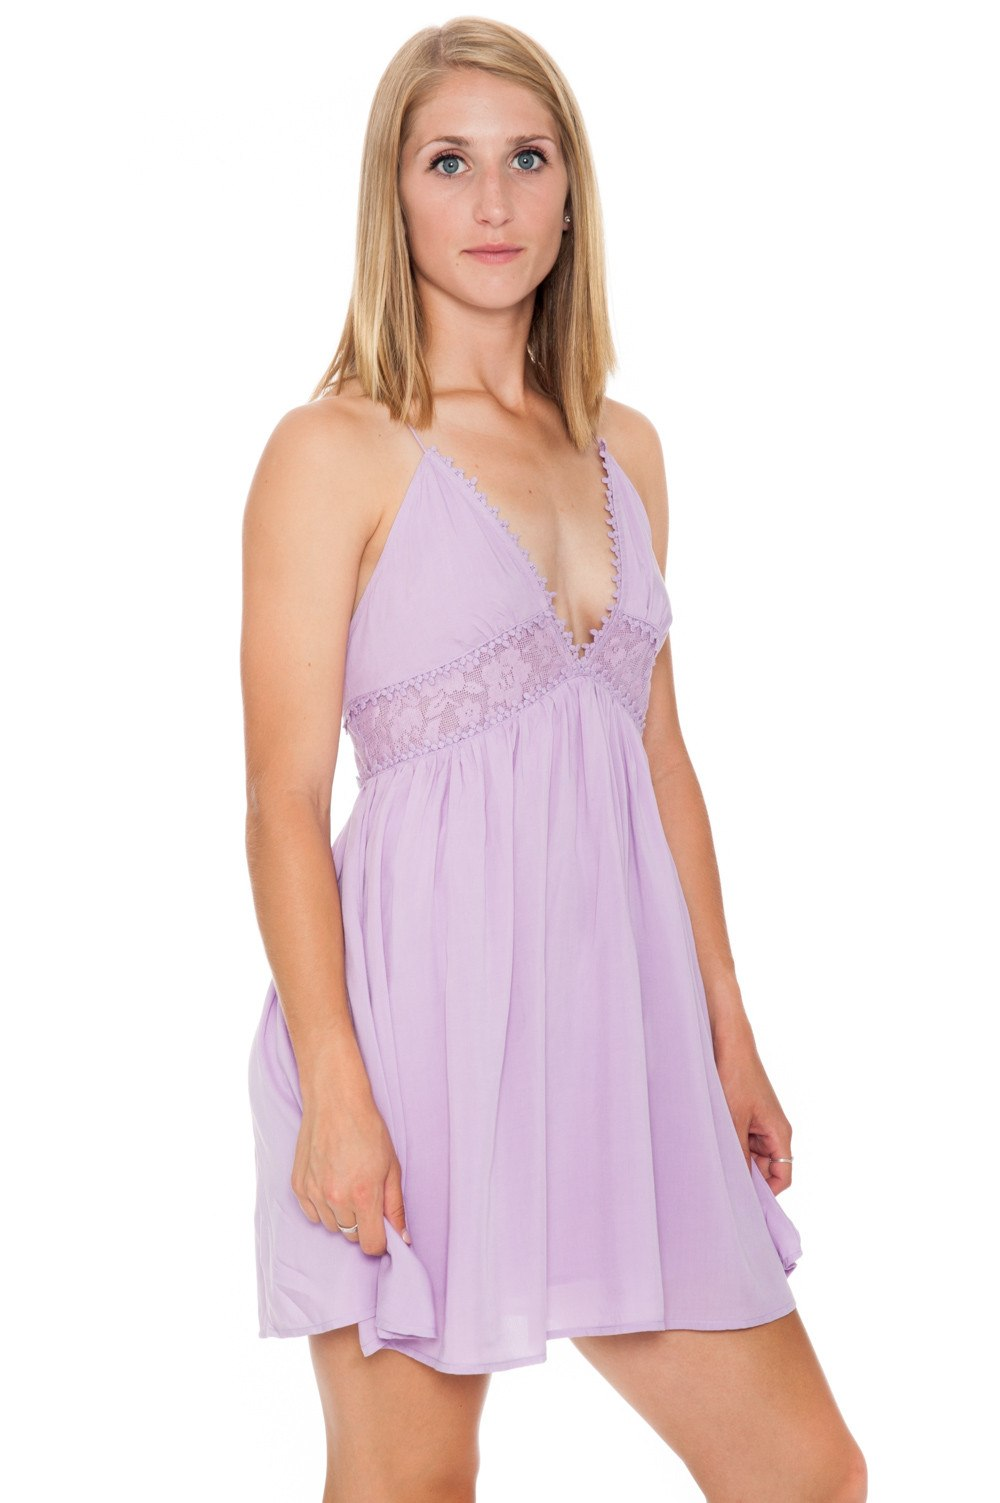 Dress - Lilac Boho Peek-a-Boo - 2